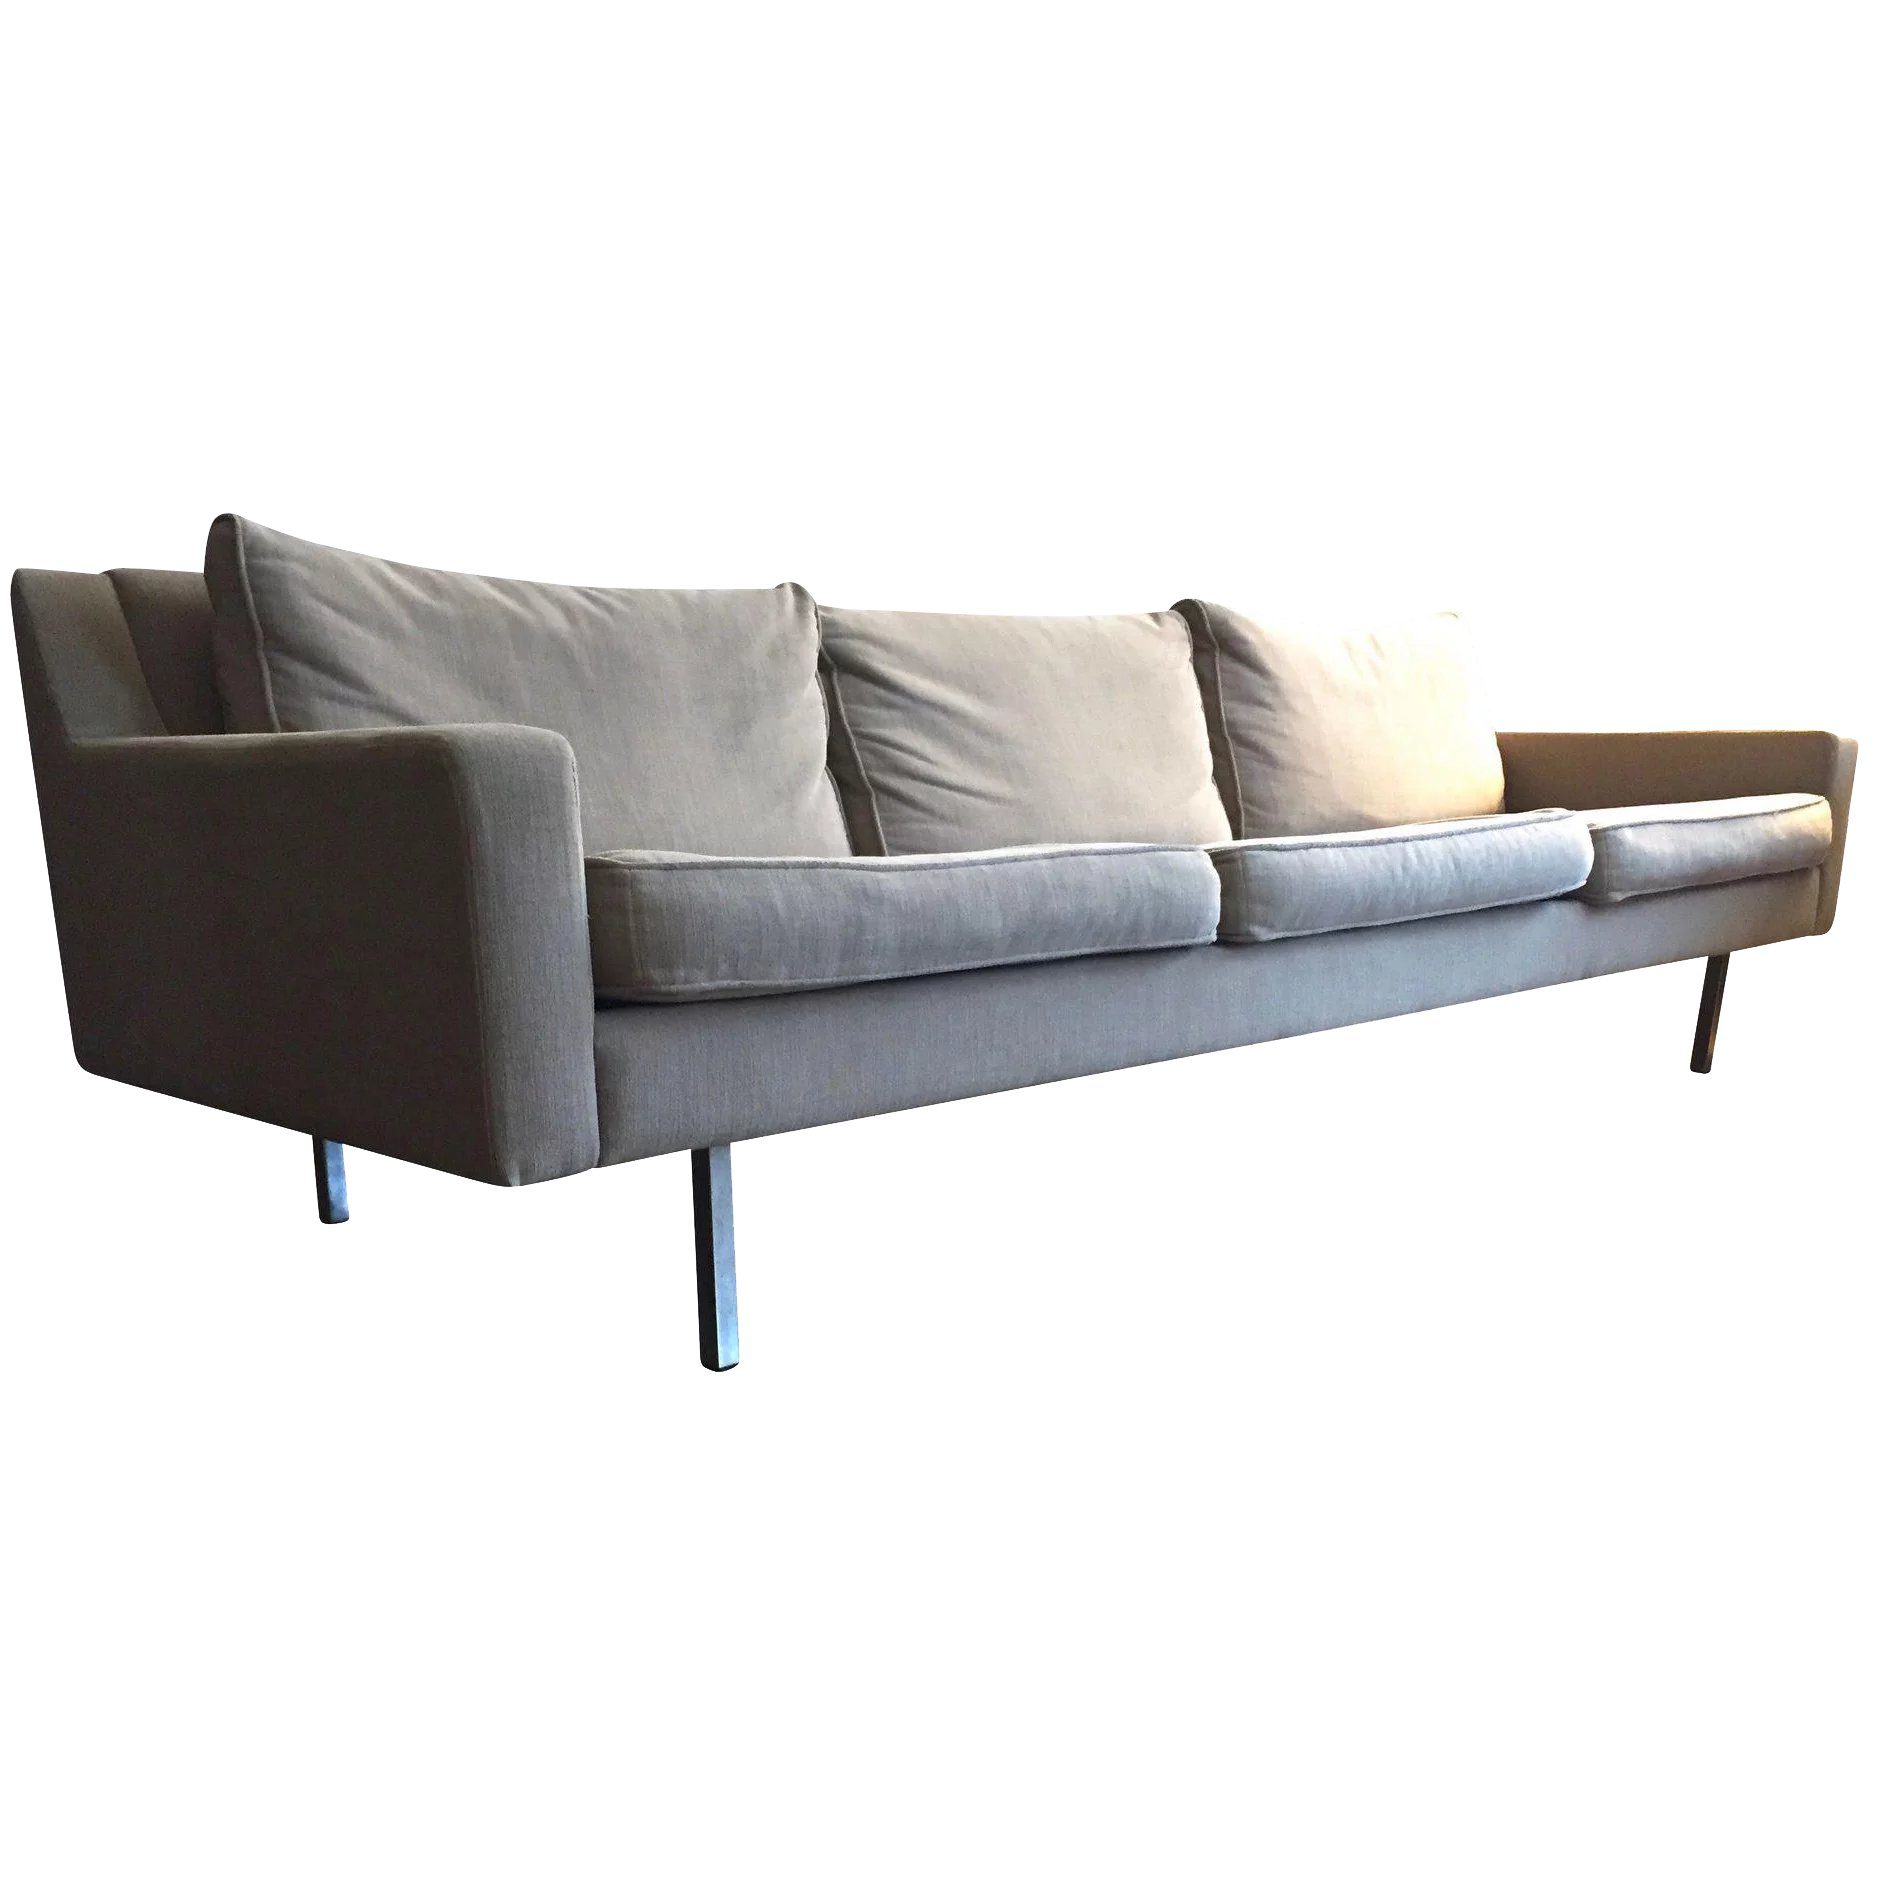 Edward Wormley Sofa, Ljungs Industrier/DUX, 1960u0027s : Martin Bohn + Partner  | RubyLUX